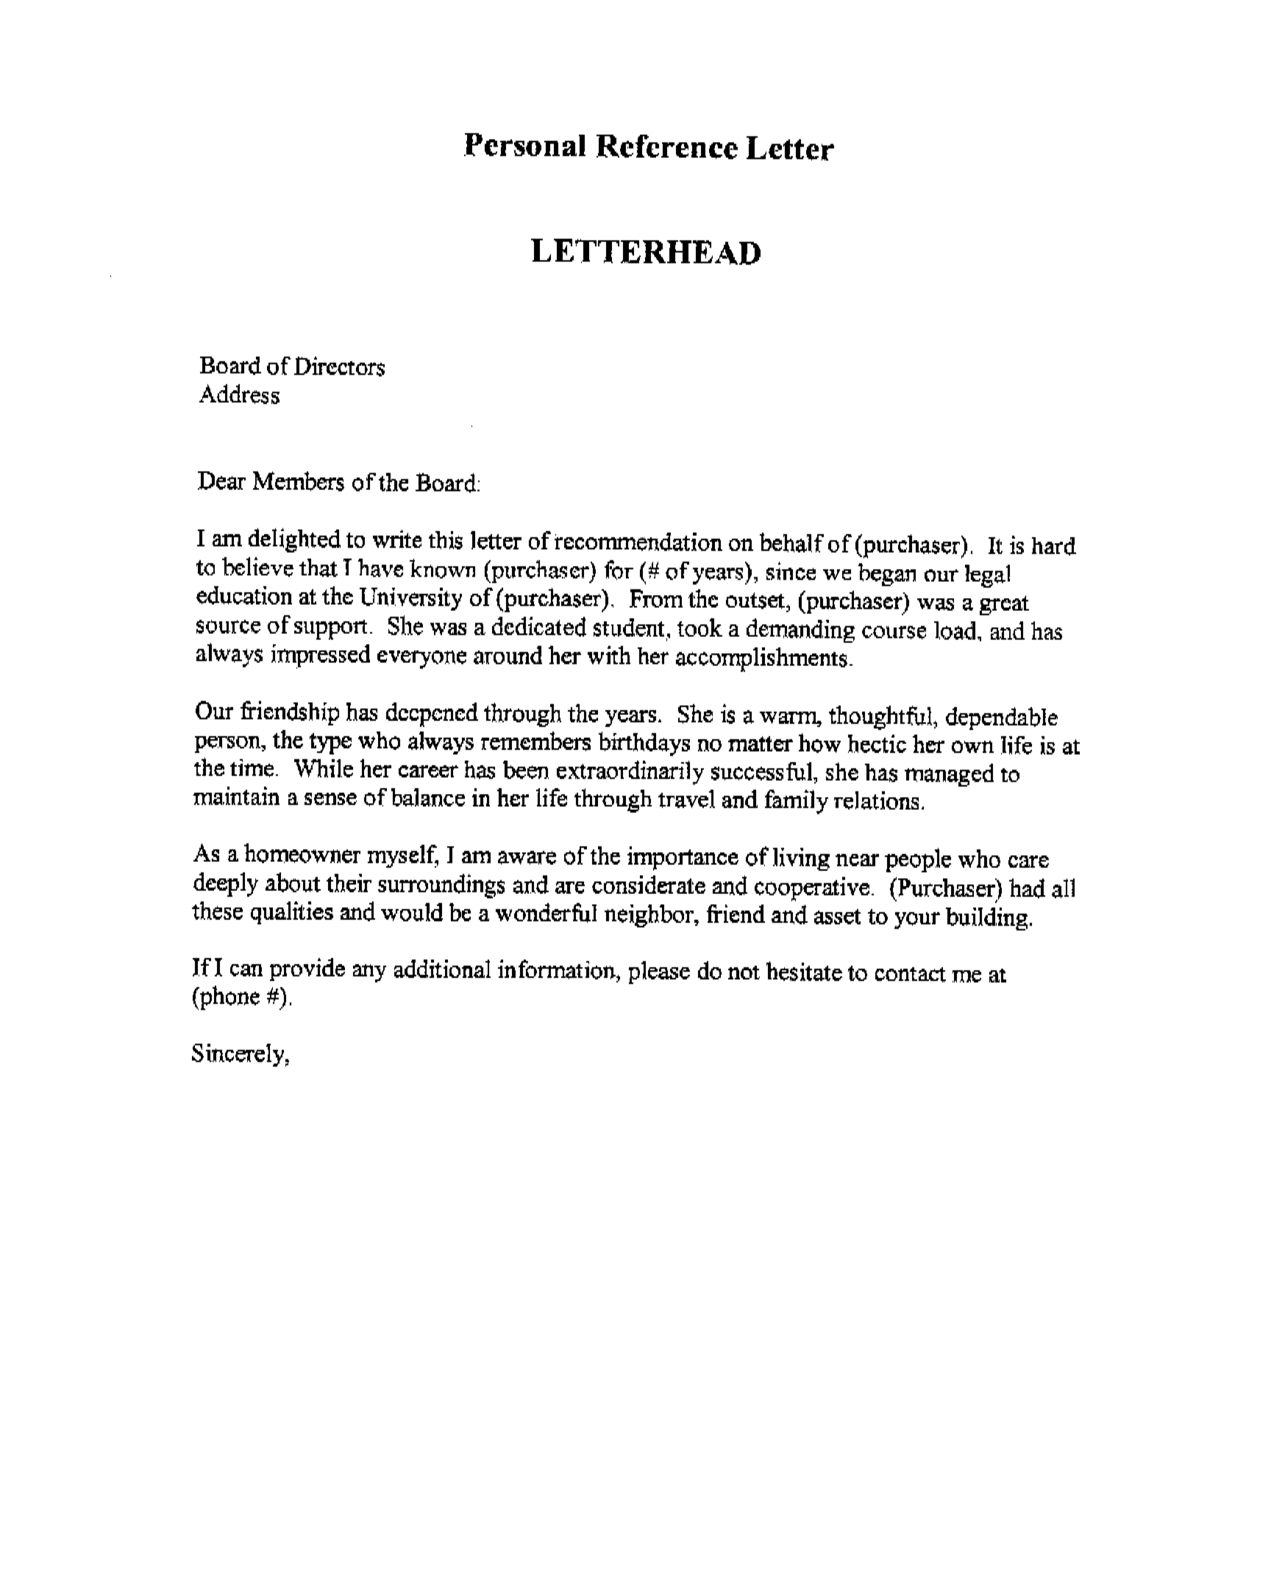 Professional recommendation letter this is an example of a professional recommendation letter this is an example of a professional recommendation written for an employee expocarfo